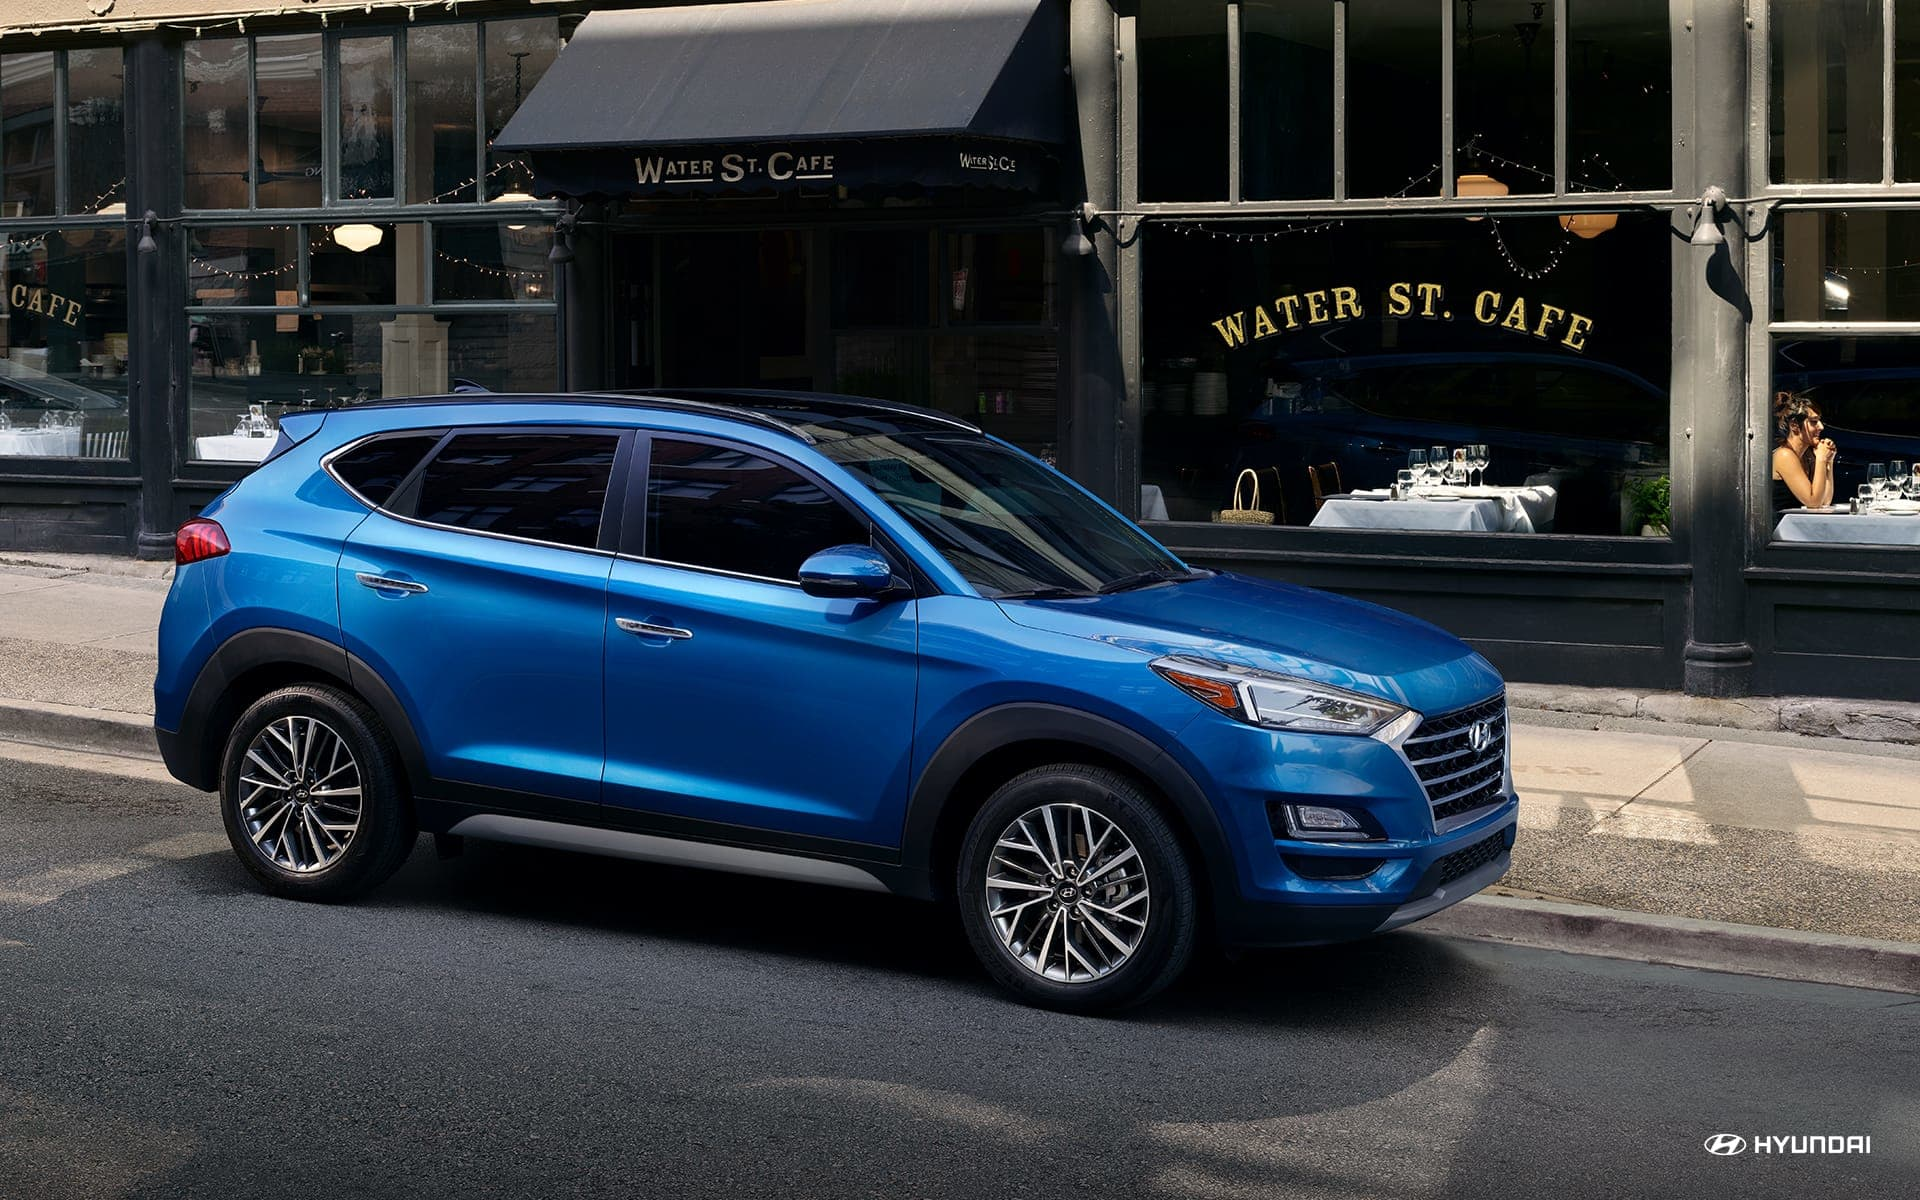 2019 Hyundai Tucson Blue Side Exterior Picture